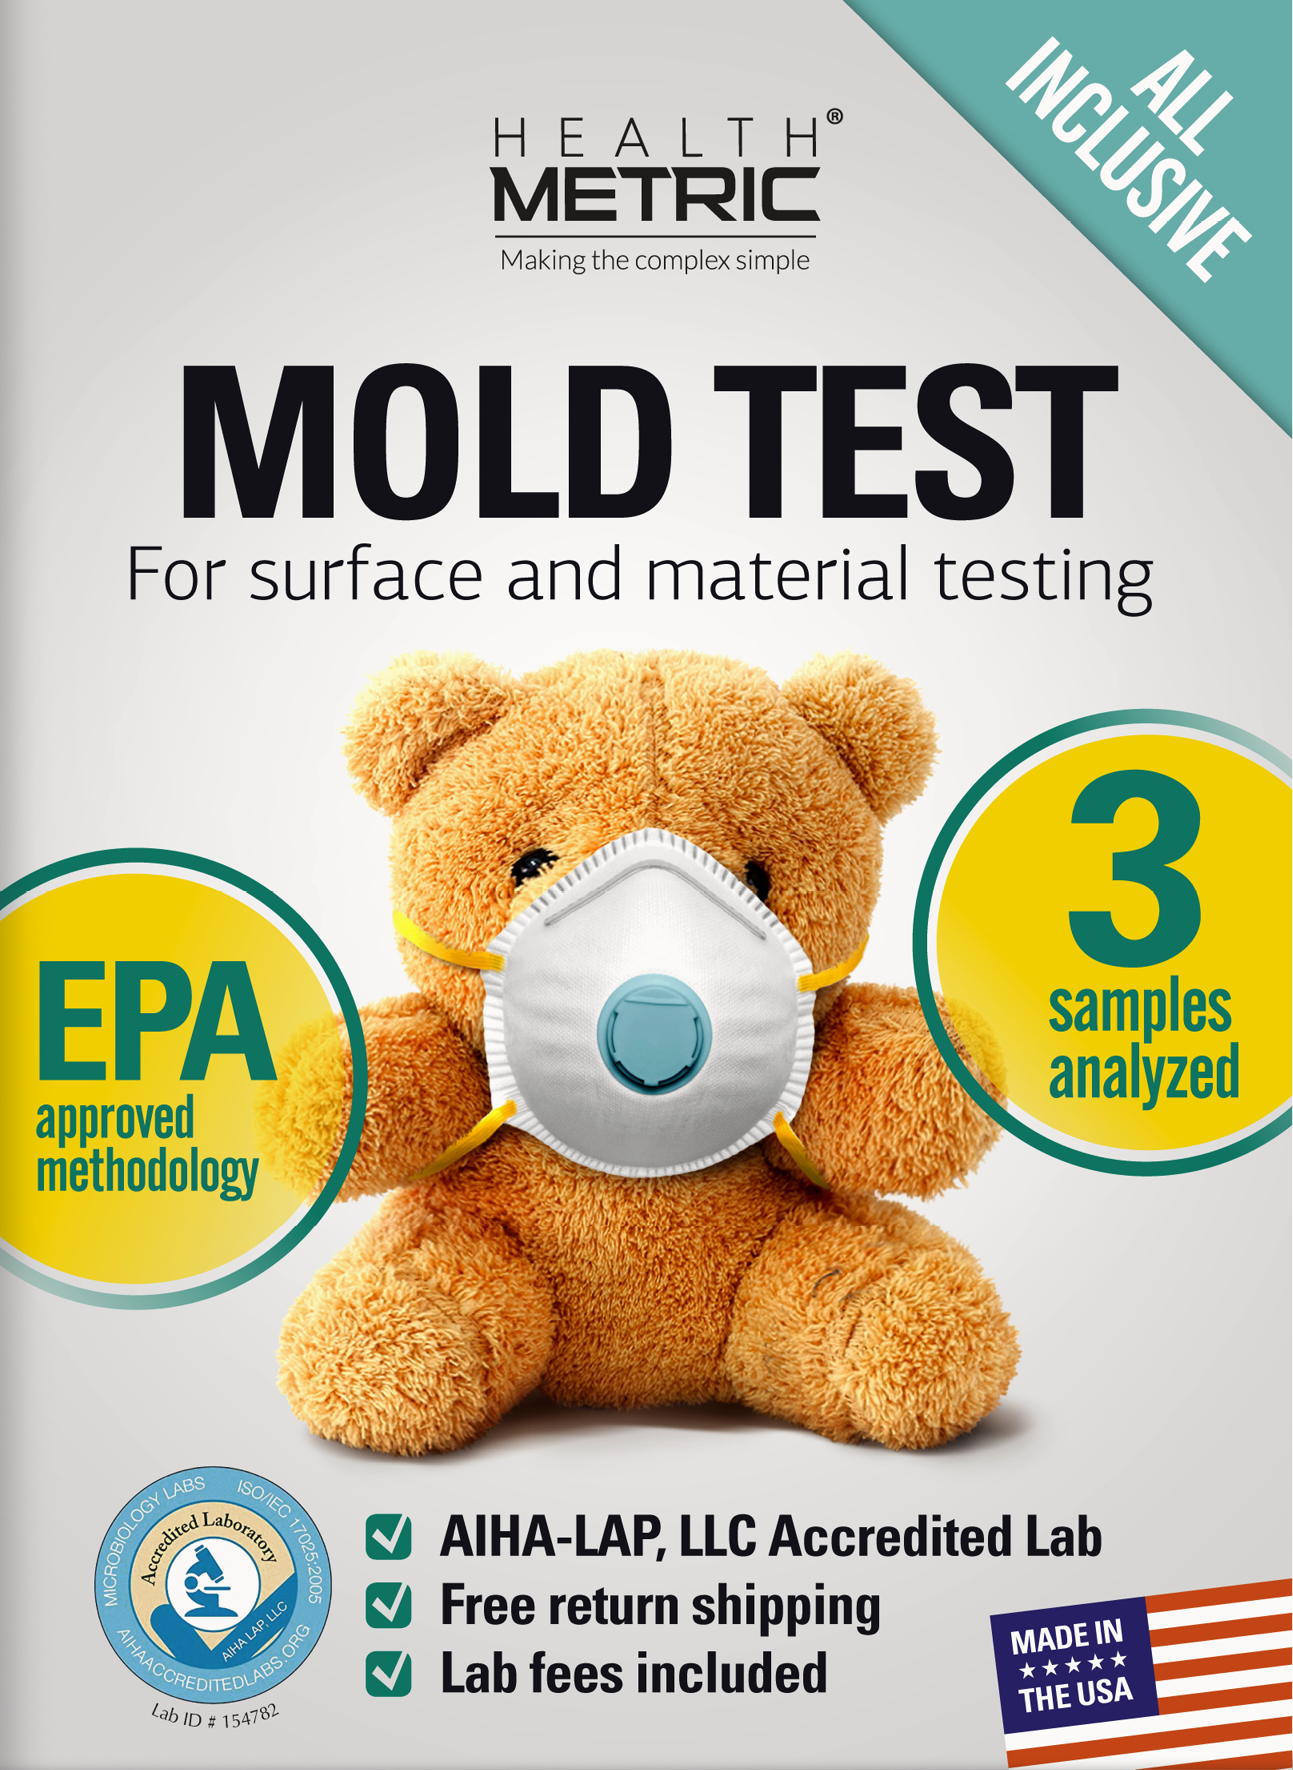 Mold Test Kit for Home - Includes free return shipping and Lab Analysis for 3 samples